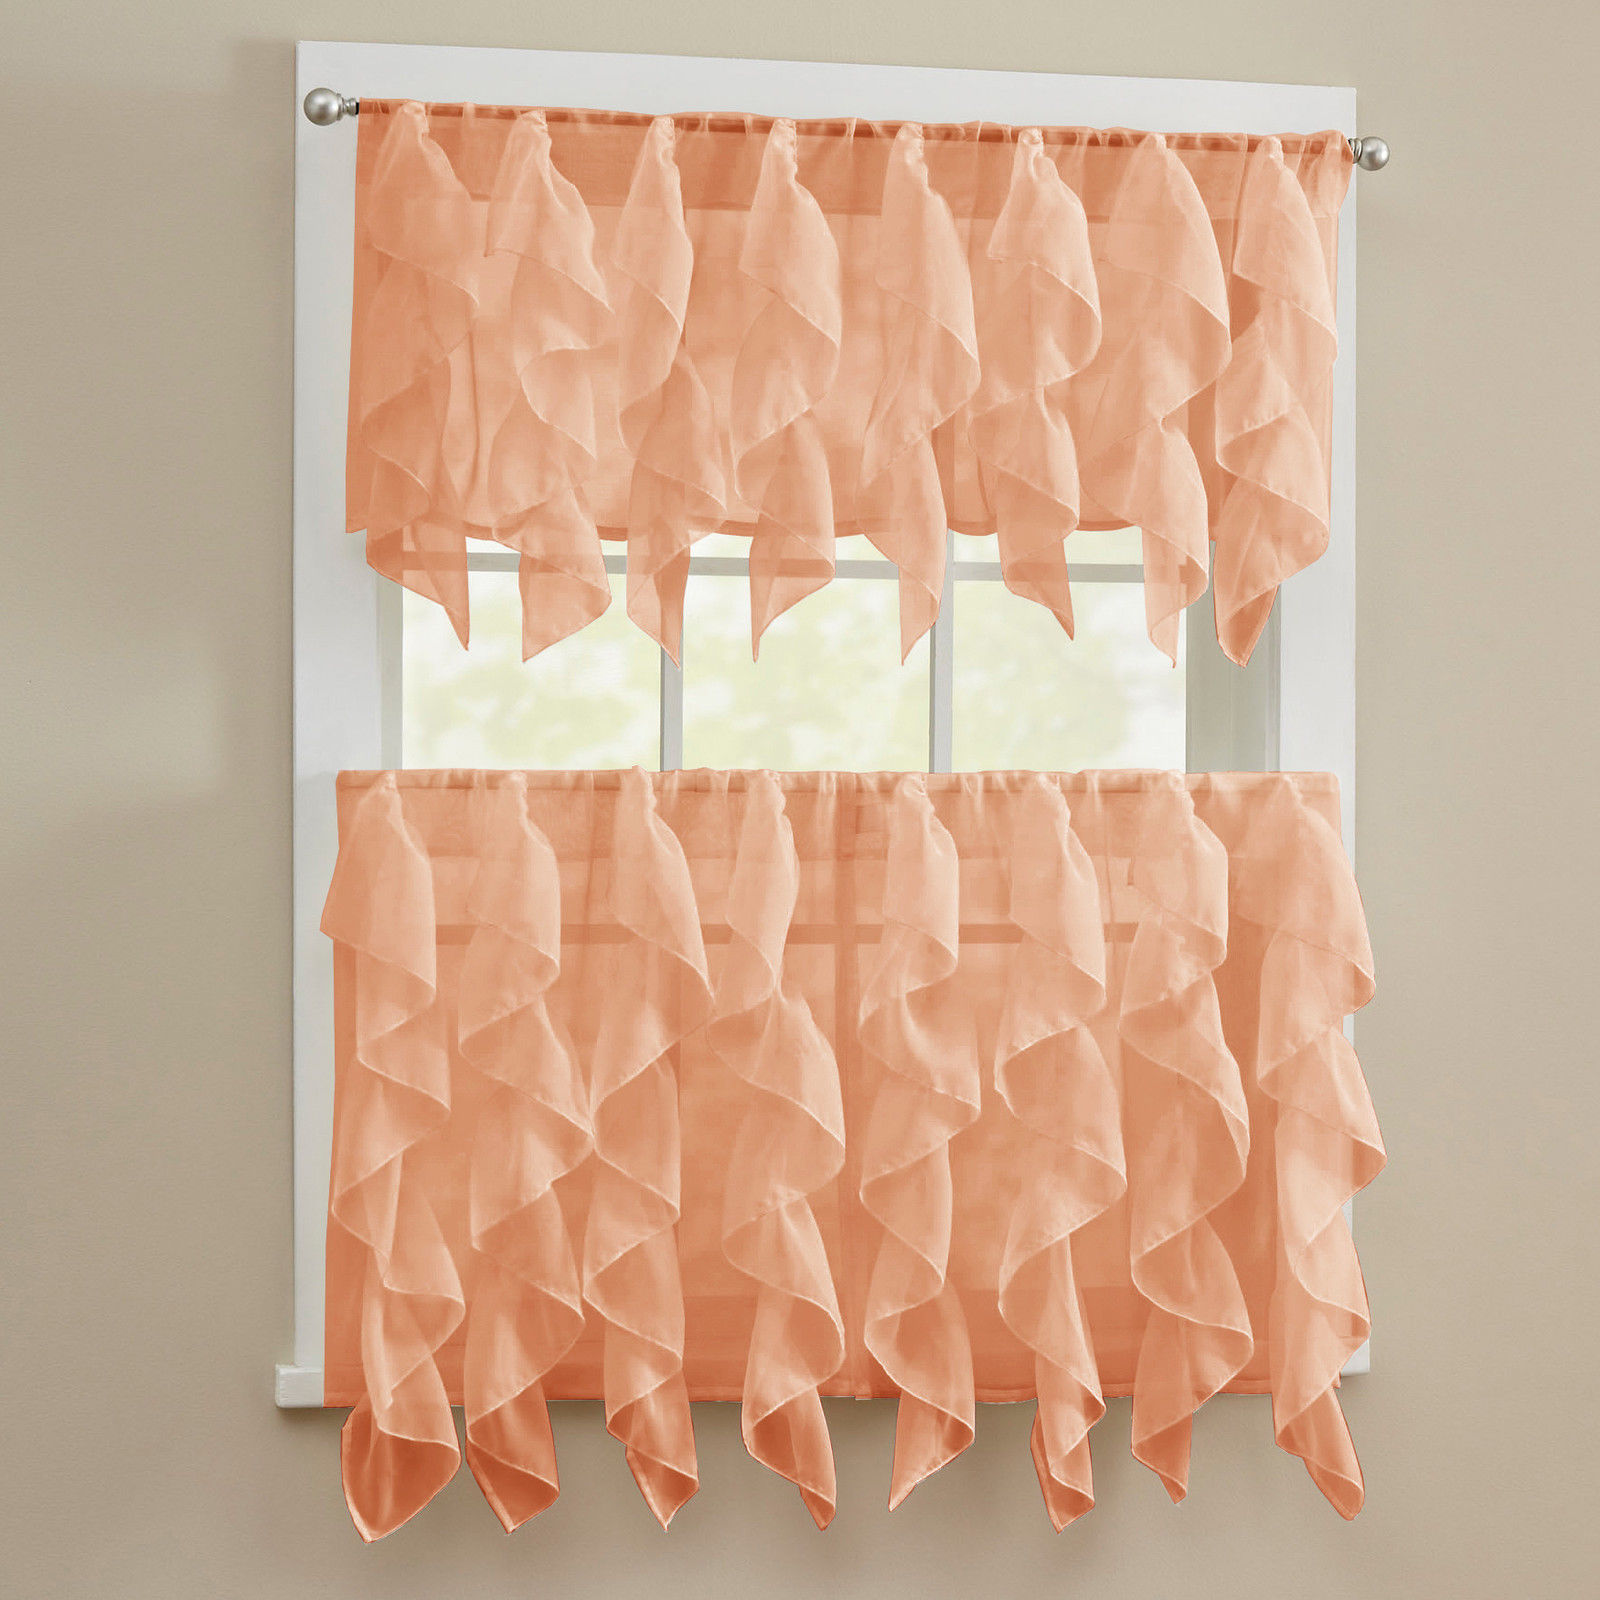 Primary image for Sheer Voile Vertical Ruffle Kitchen Window Curtain Tiers or Valance - Spice